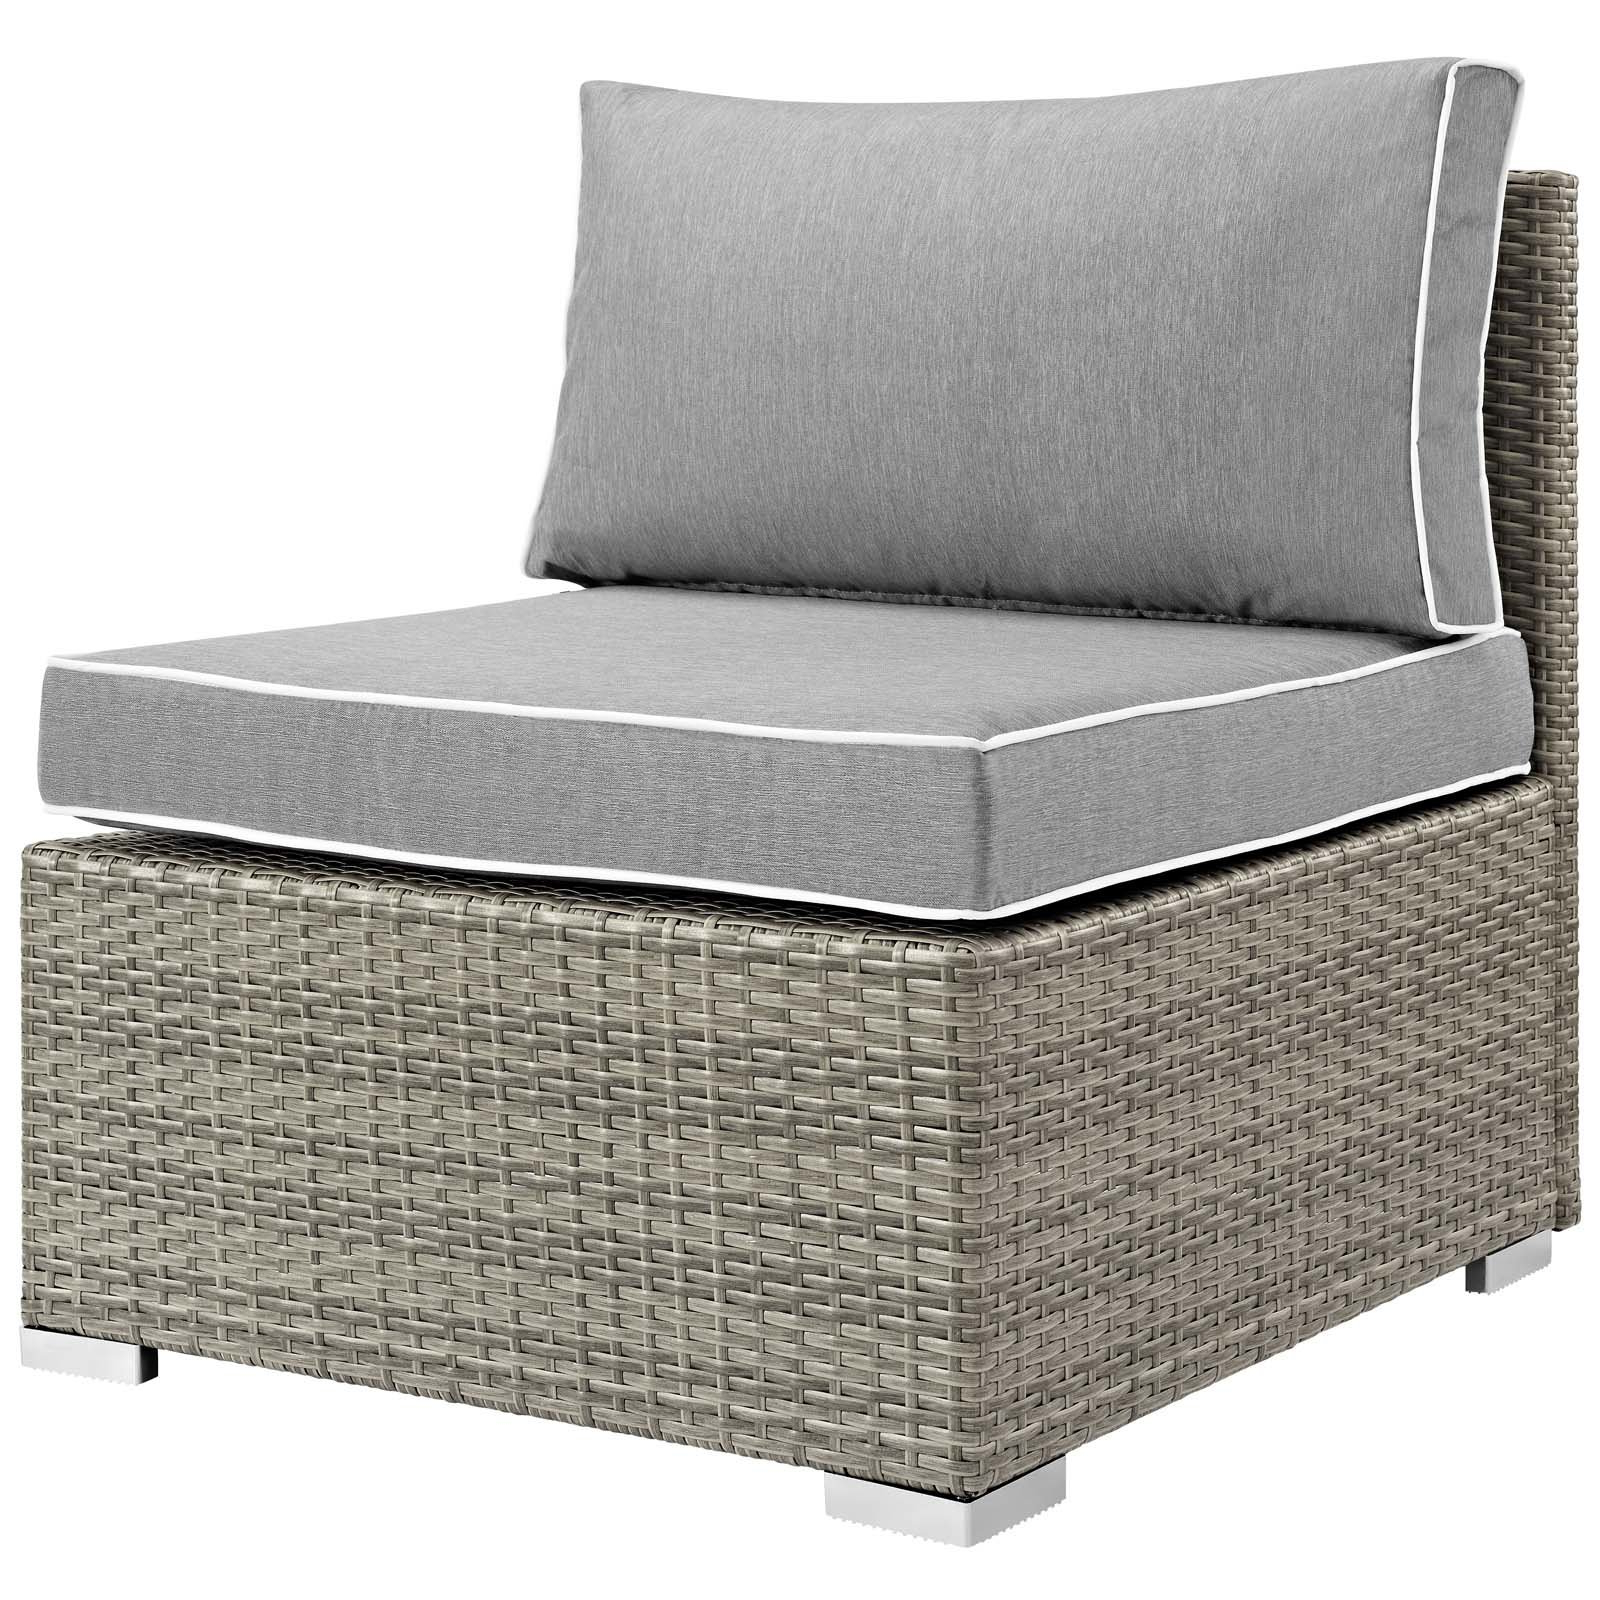 Heinrich Outdoor Armless Patio Chair With Cushion Regarding Fashionable Stapleton Wicker Resin Patio Sofas With Cushions (Gallery 17 of 20)